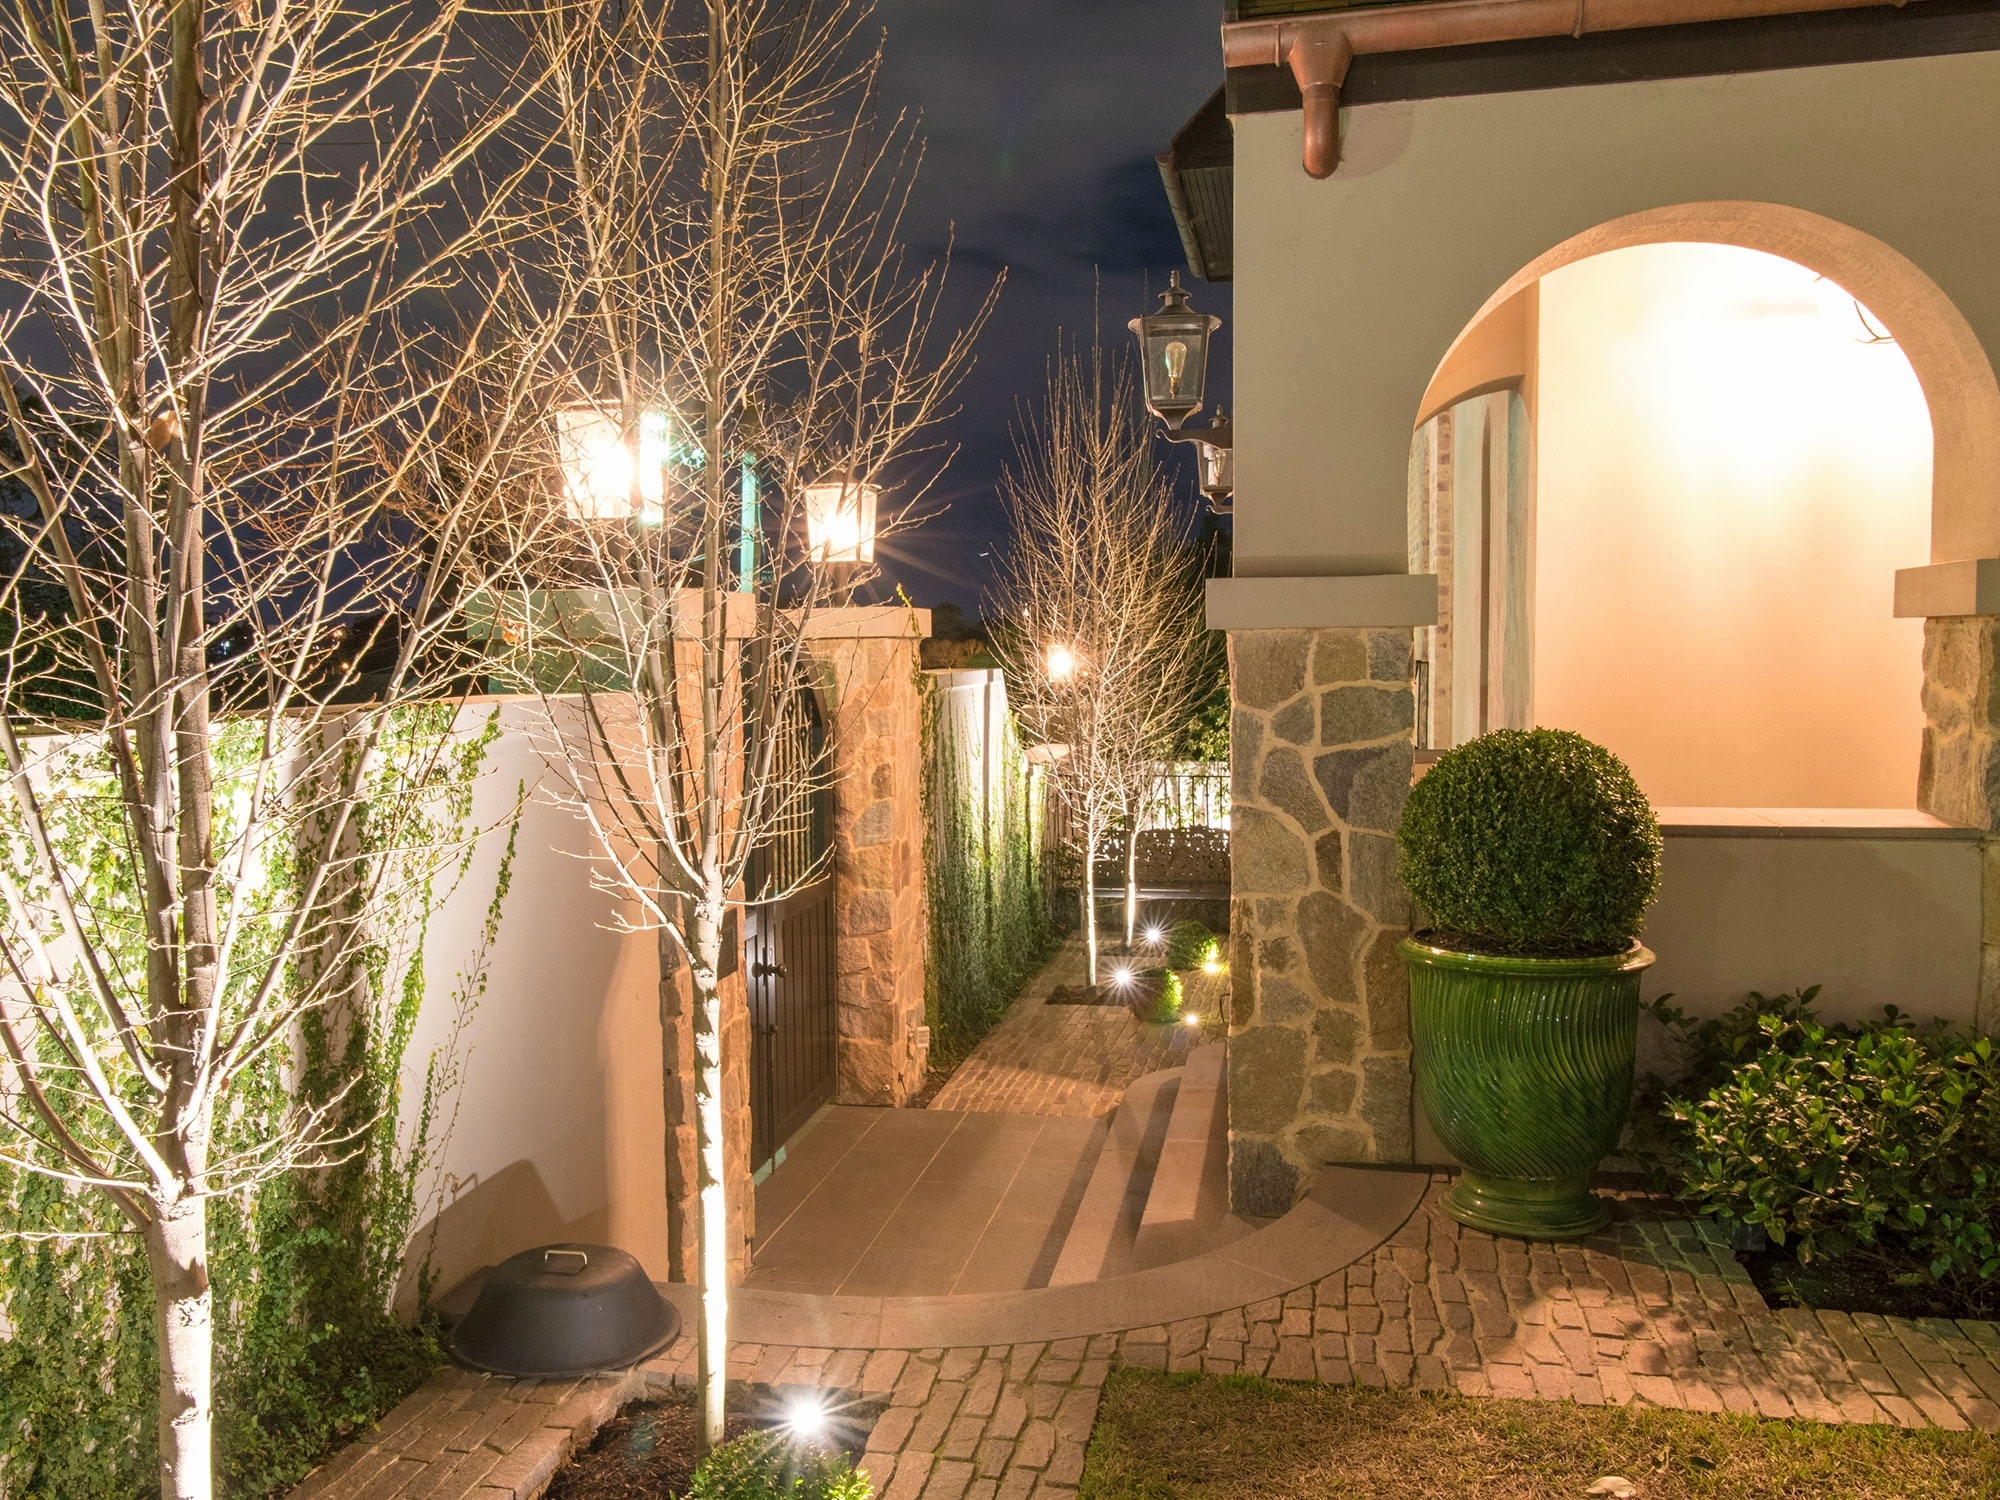 2019 Best Of Electric Outdoor Lighting Garden Home Inspiration With Regard To